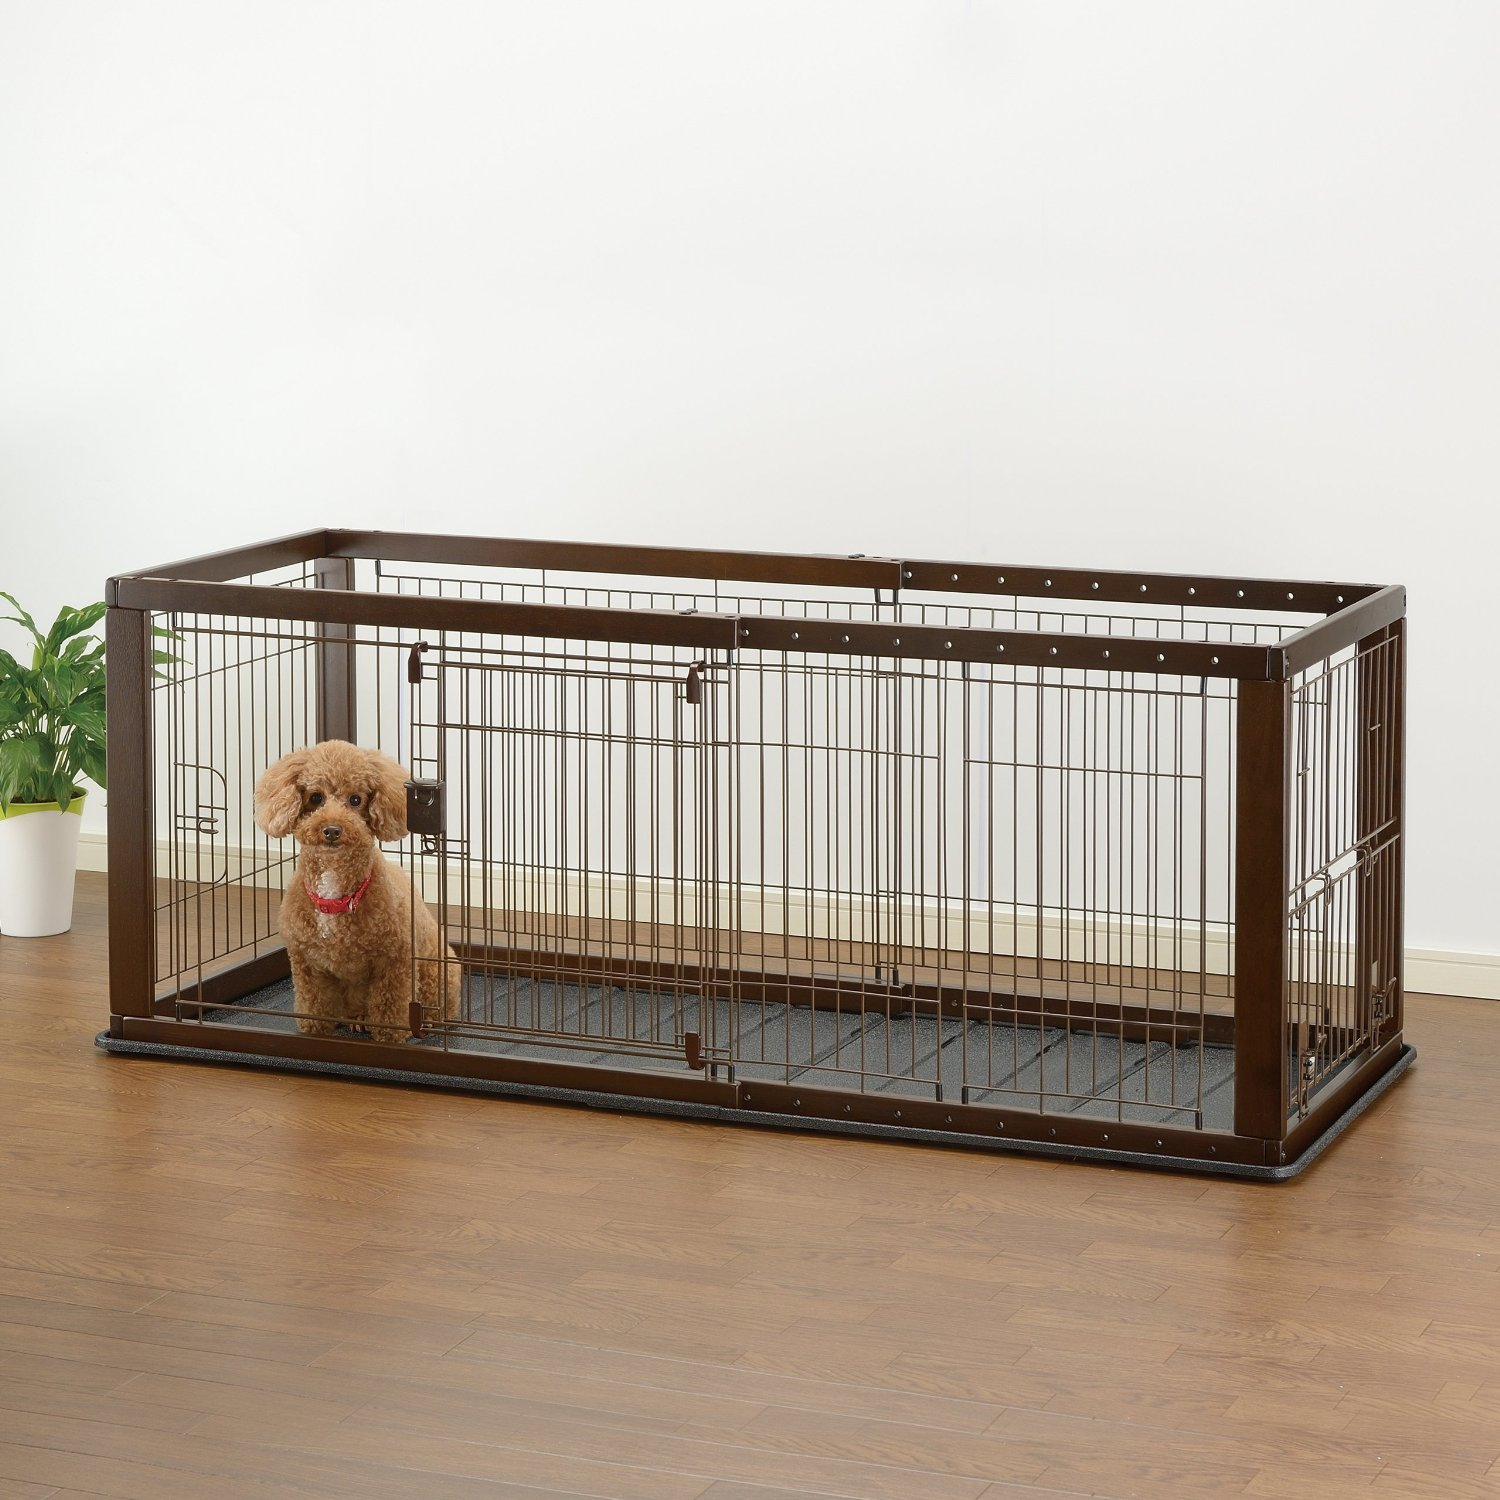 Wire Dog Crate Can Be Made Into Modern Coffee Table Kennel For Less Part 36